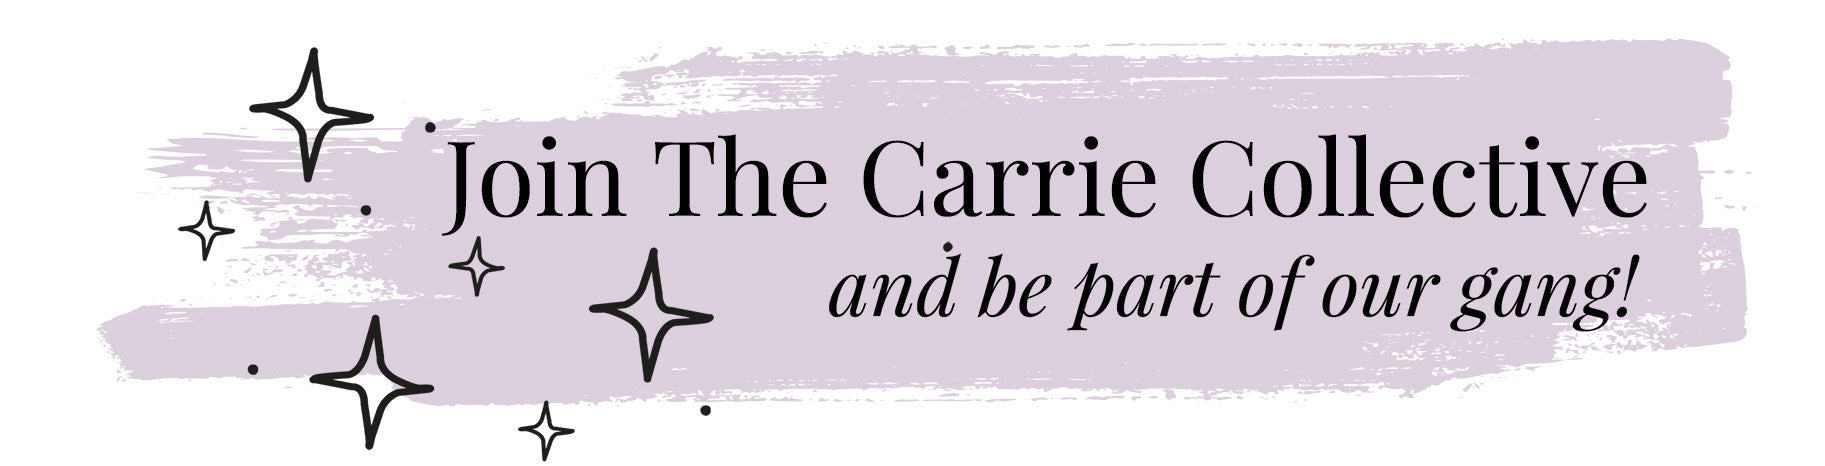 Join The Carrie Collective